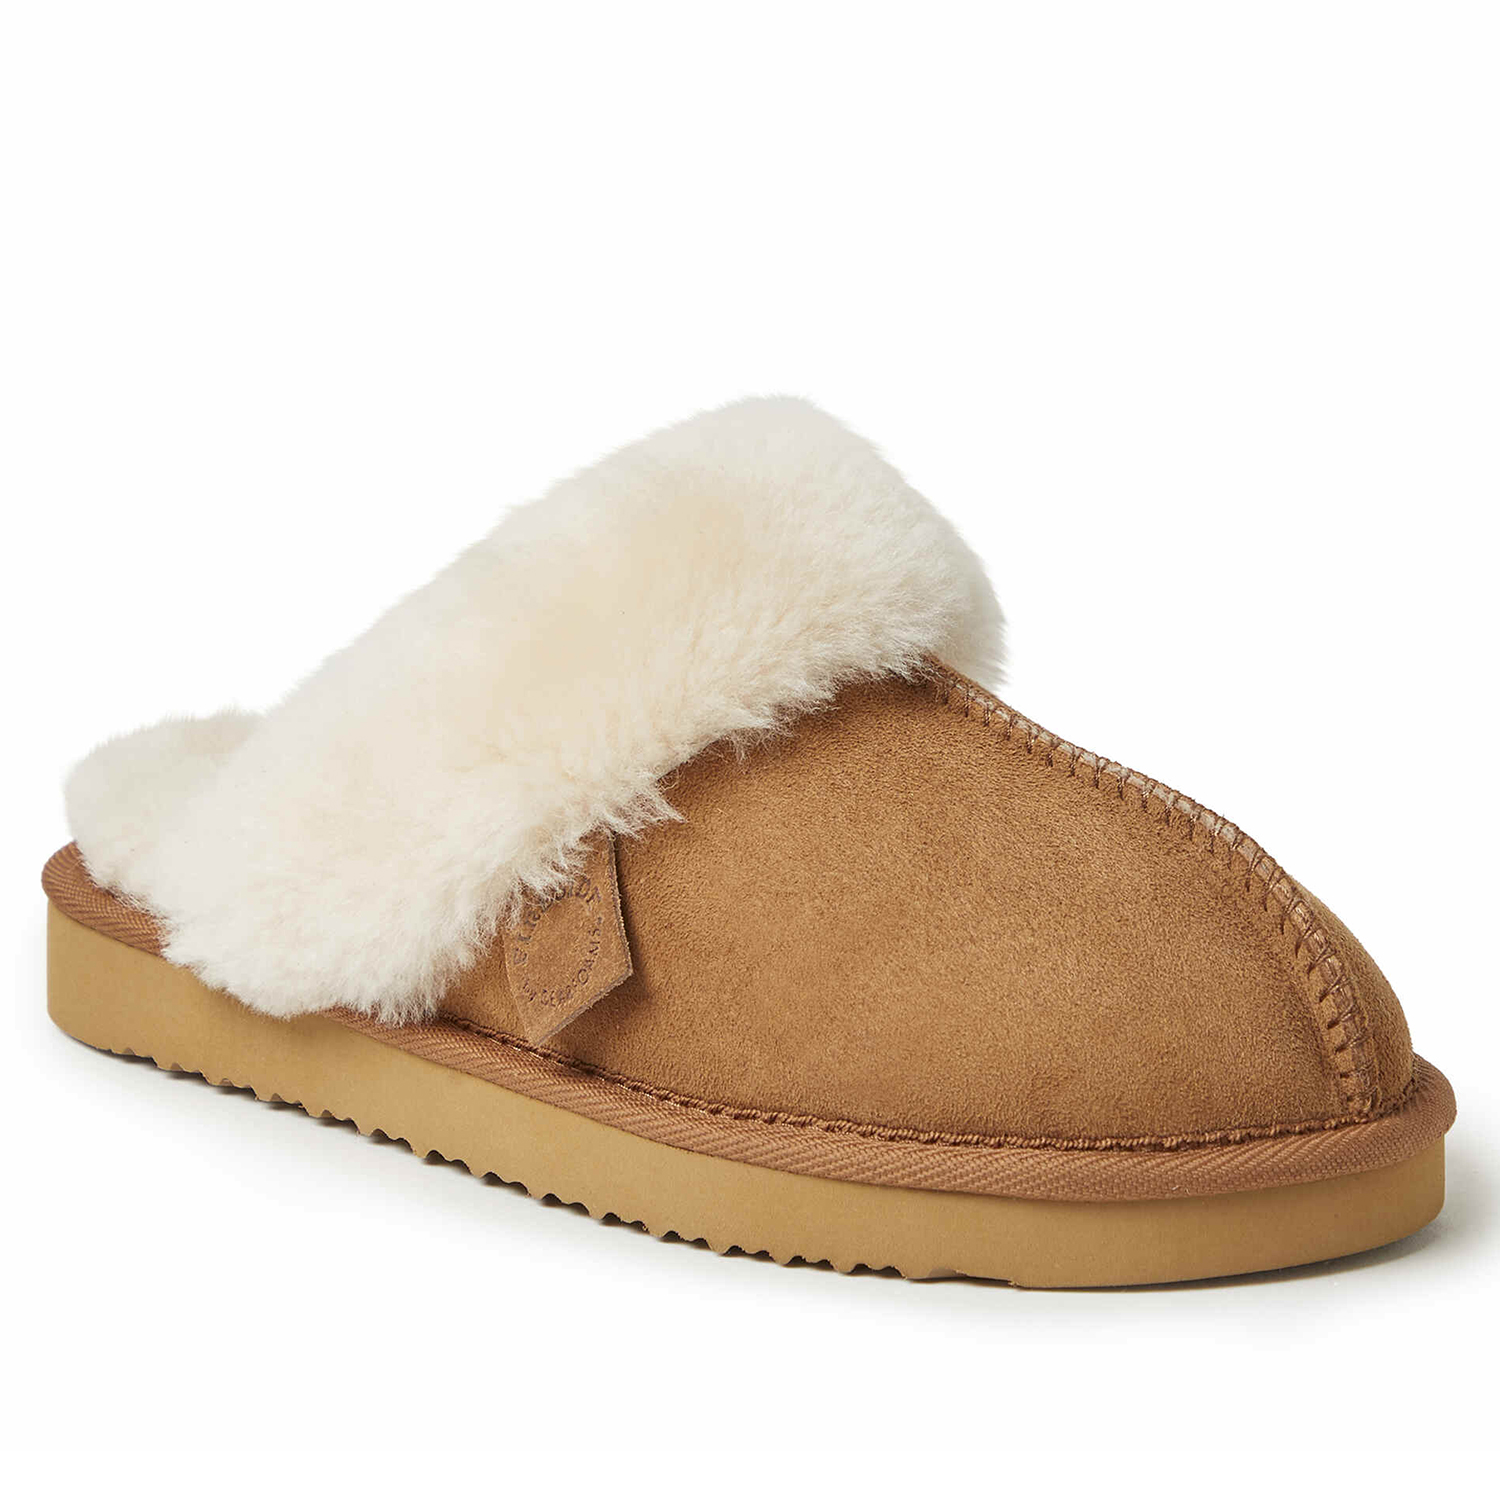 Sydney Water Resistant Genuine Shearling Scuff Slipper Dearfoams